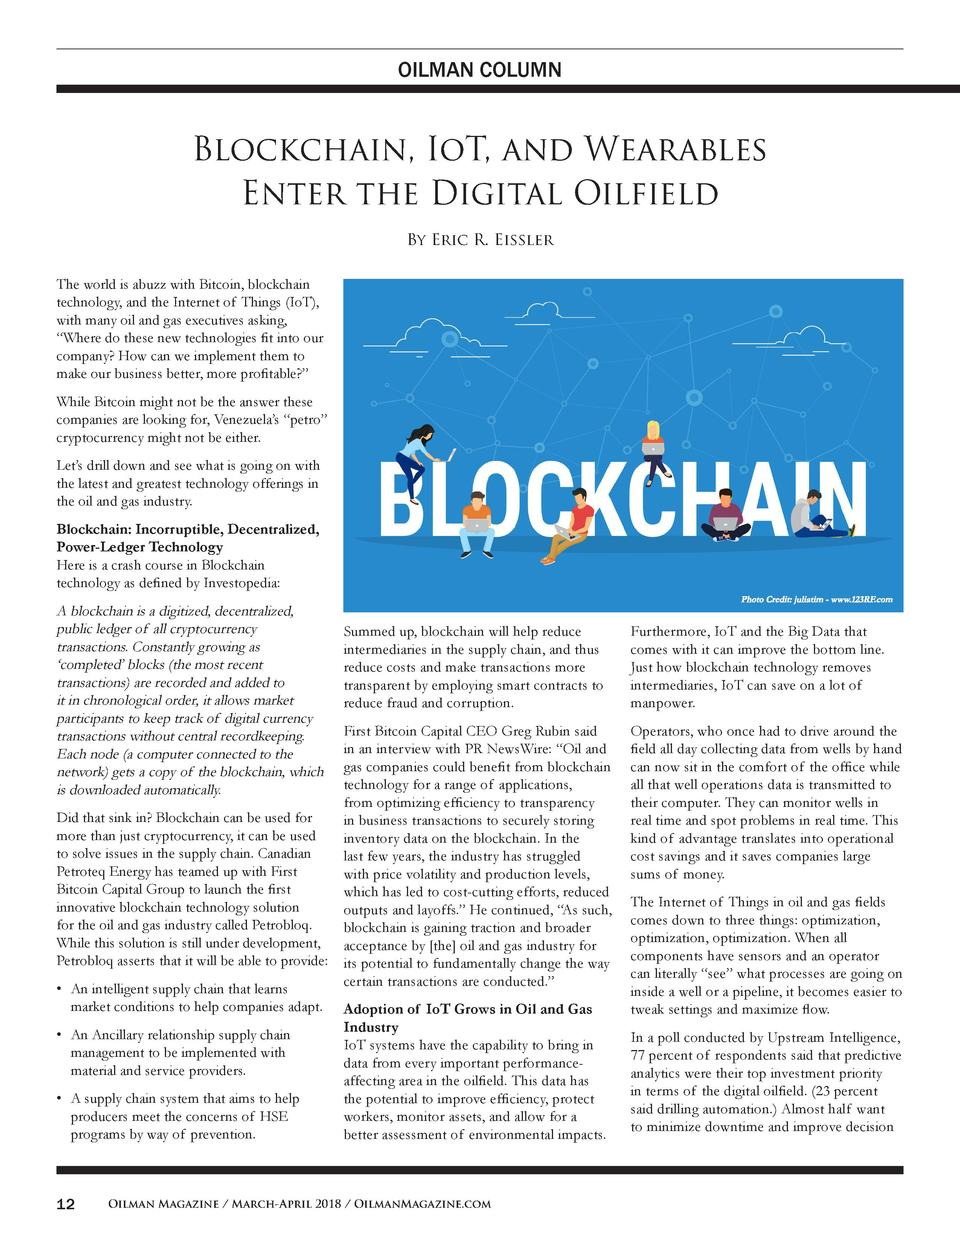 OILMAN COLUMN  Blockchain, IoT, and Wearables Enter the Digital Oilfield By Eric R. Eissler The world is abuzz with Bitcoi...